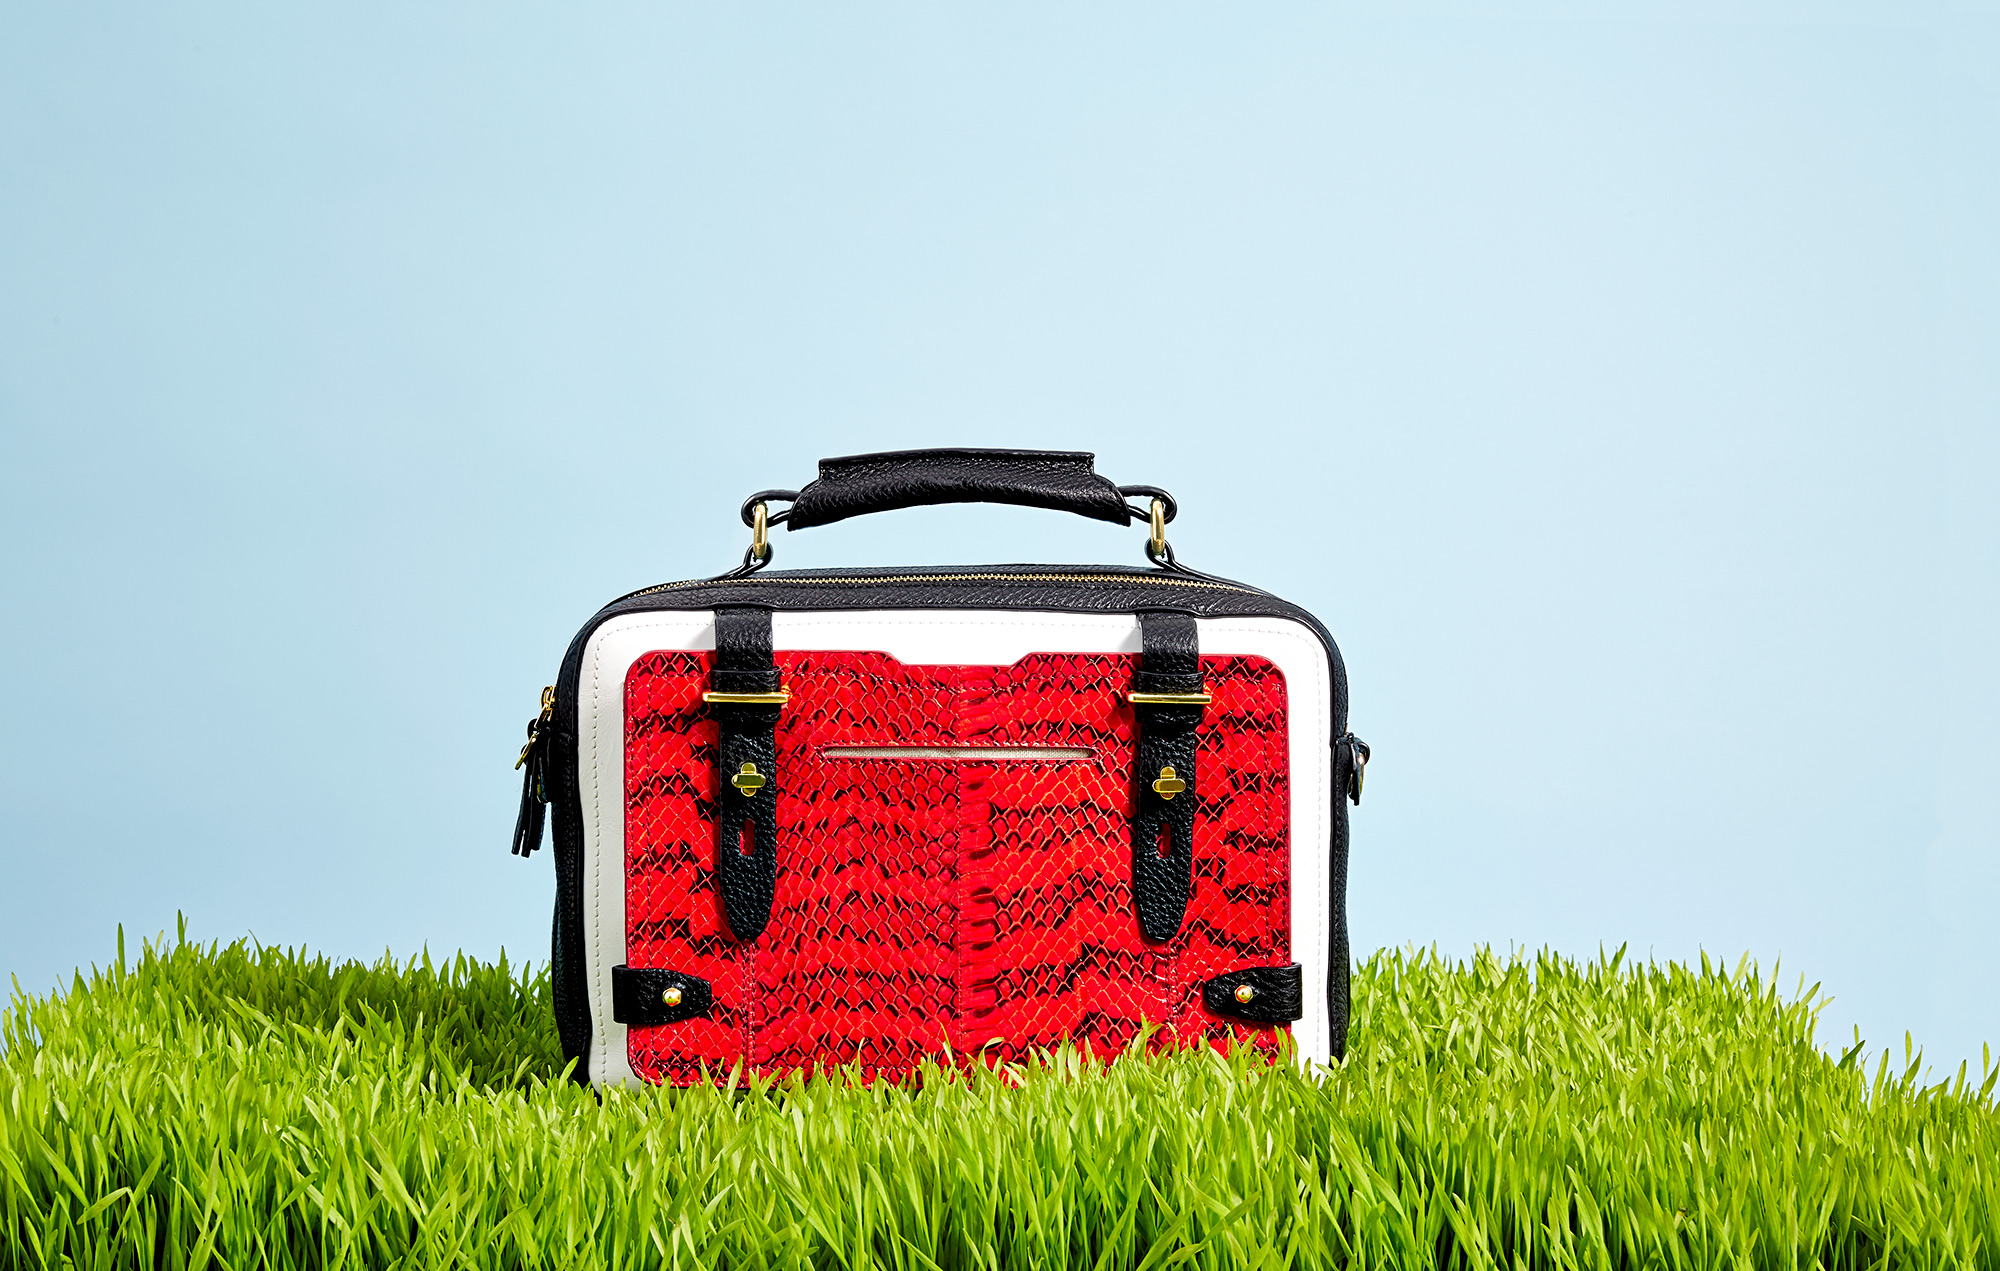 EE_bag_grass